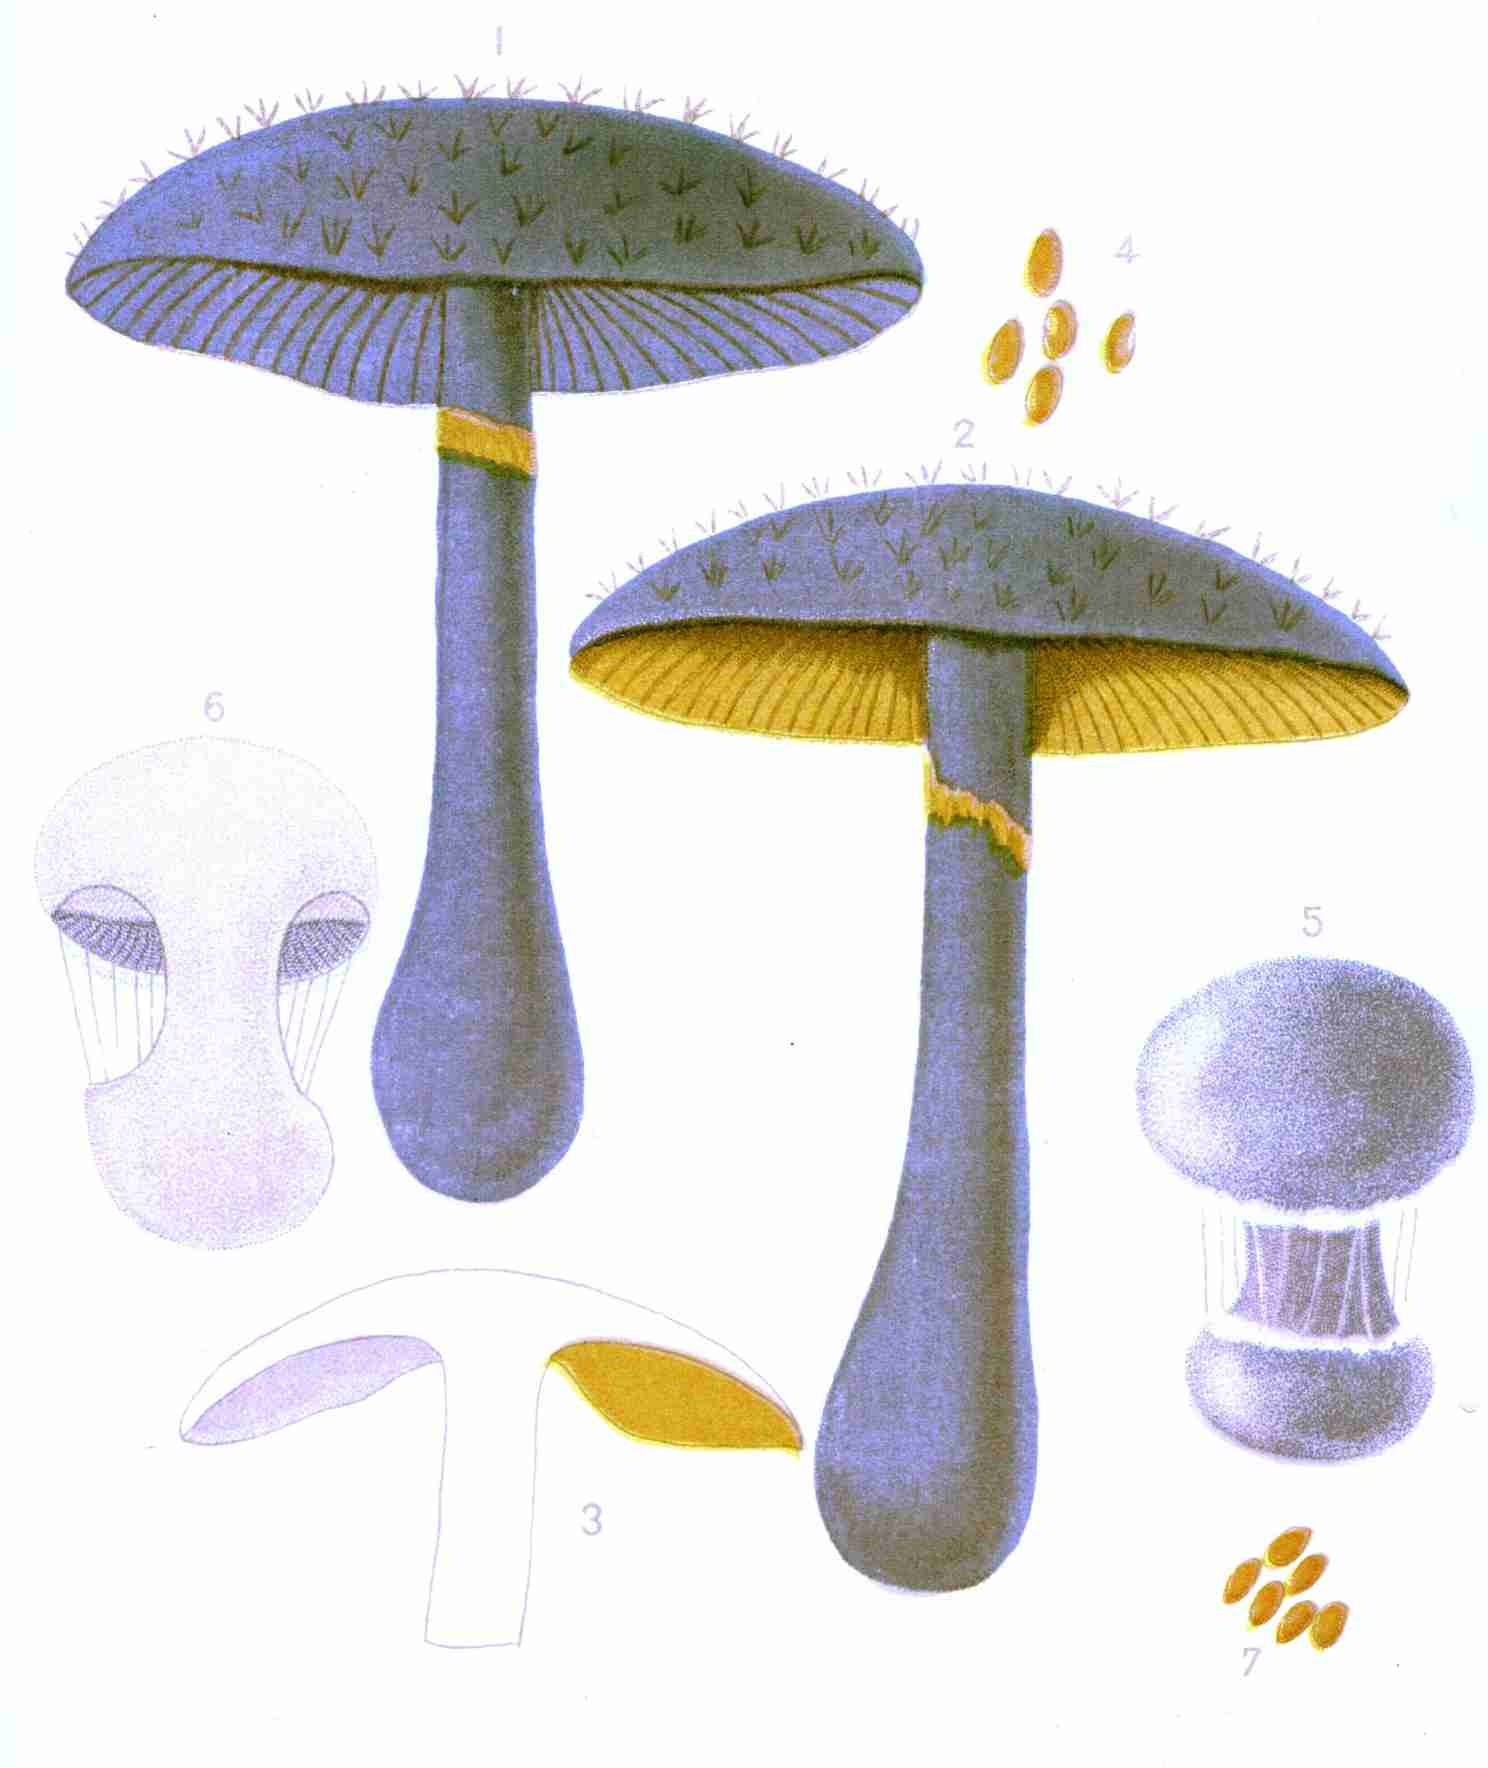 The project gutenberg ebook of students hand book of mushrooms of the project gutenberg ebook of students hand book of mushrooms of america edible and poisonous by thomas taylor m d fandeluxe Choice Image